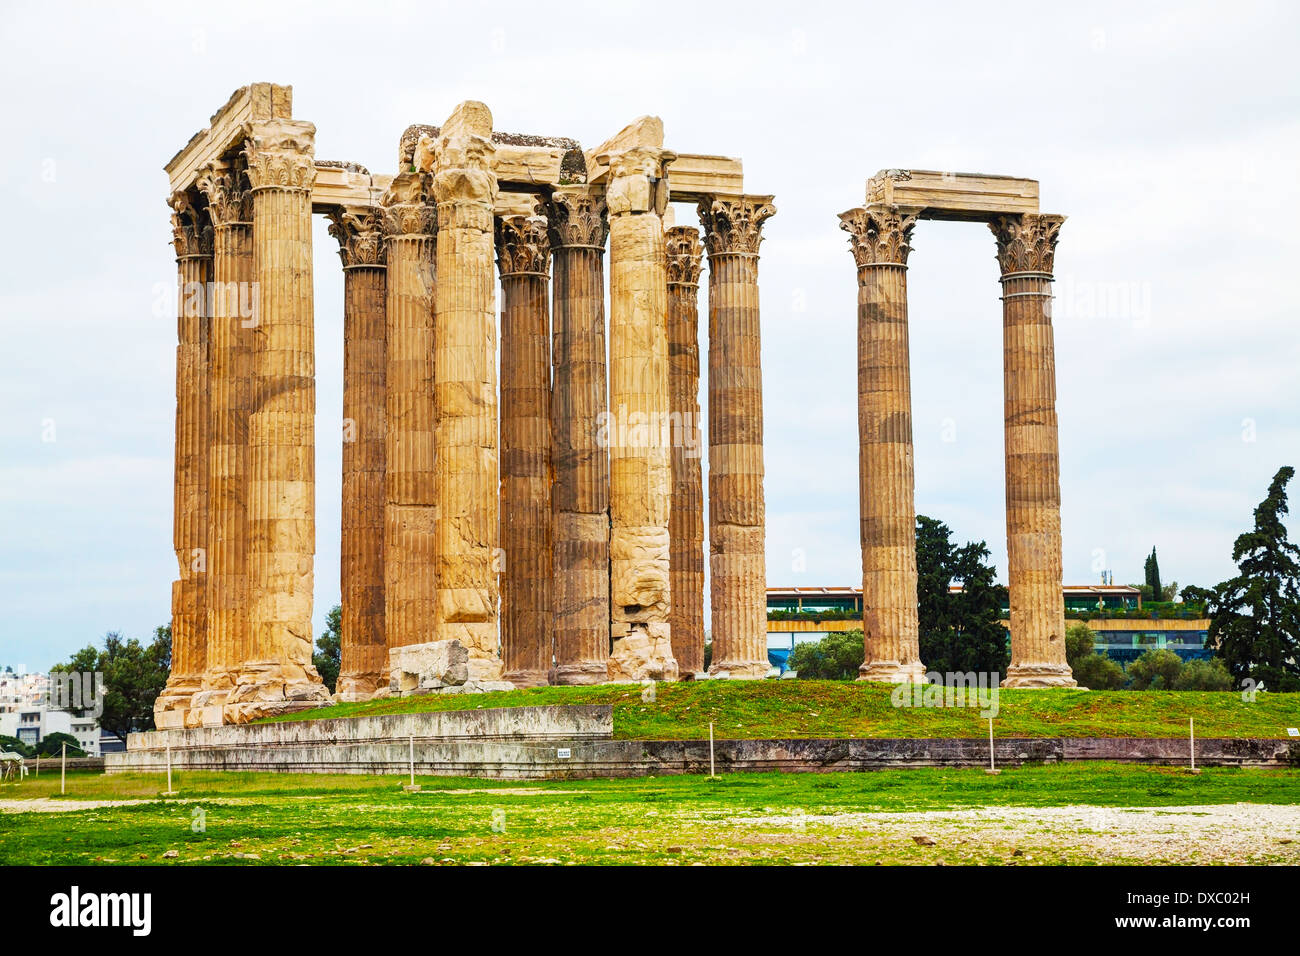 Temple of Olympian Zeus in Athens, Greece on an overcast day - Stock Image